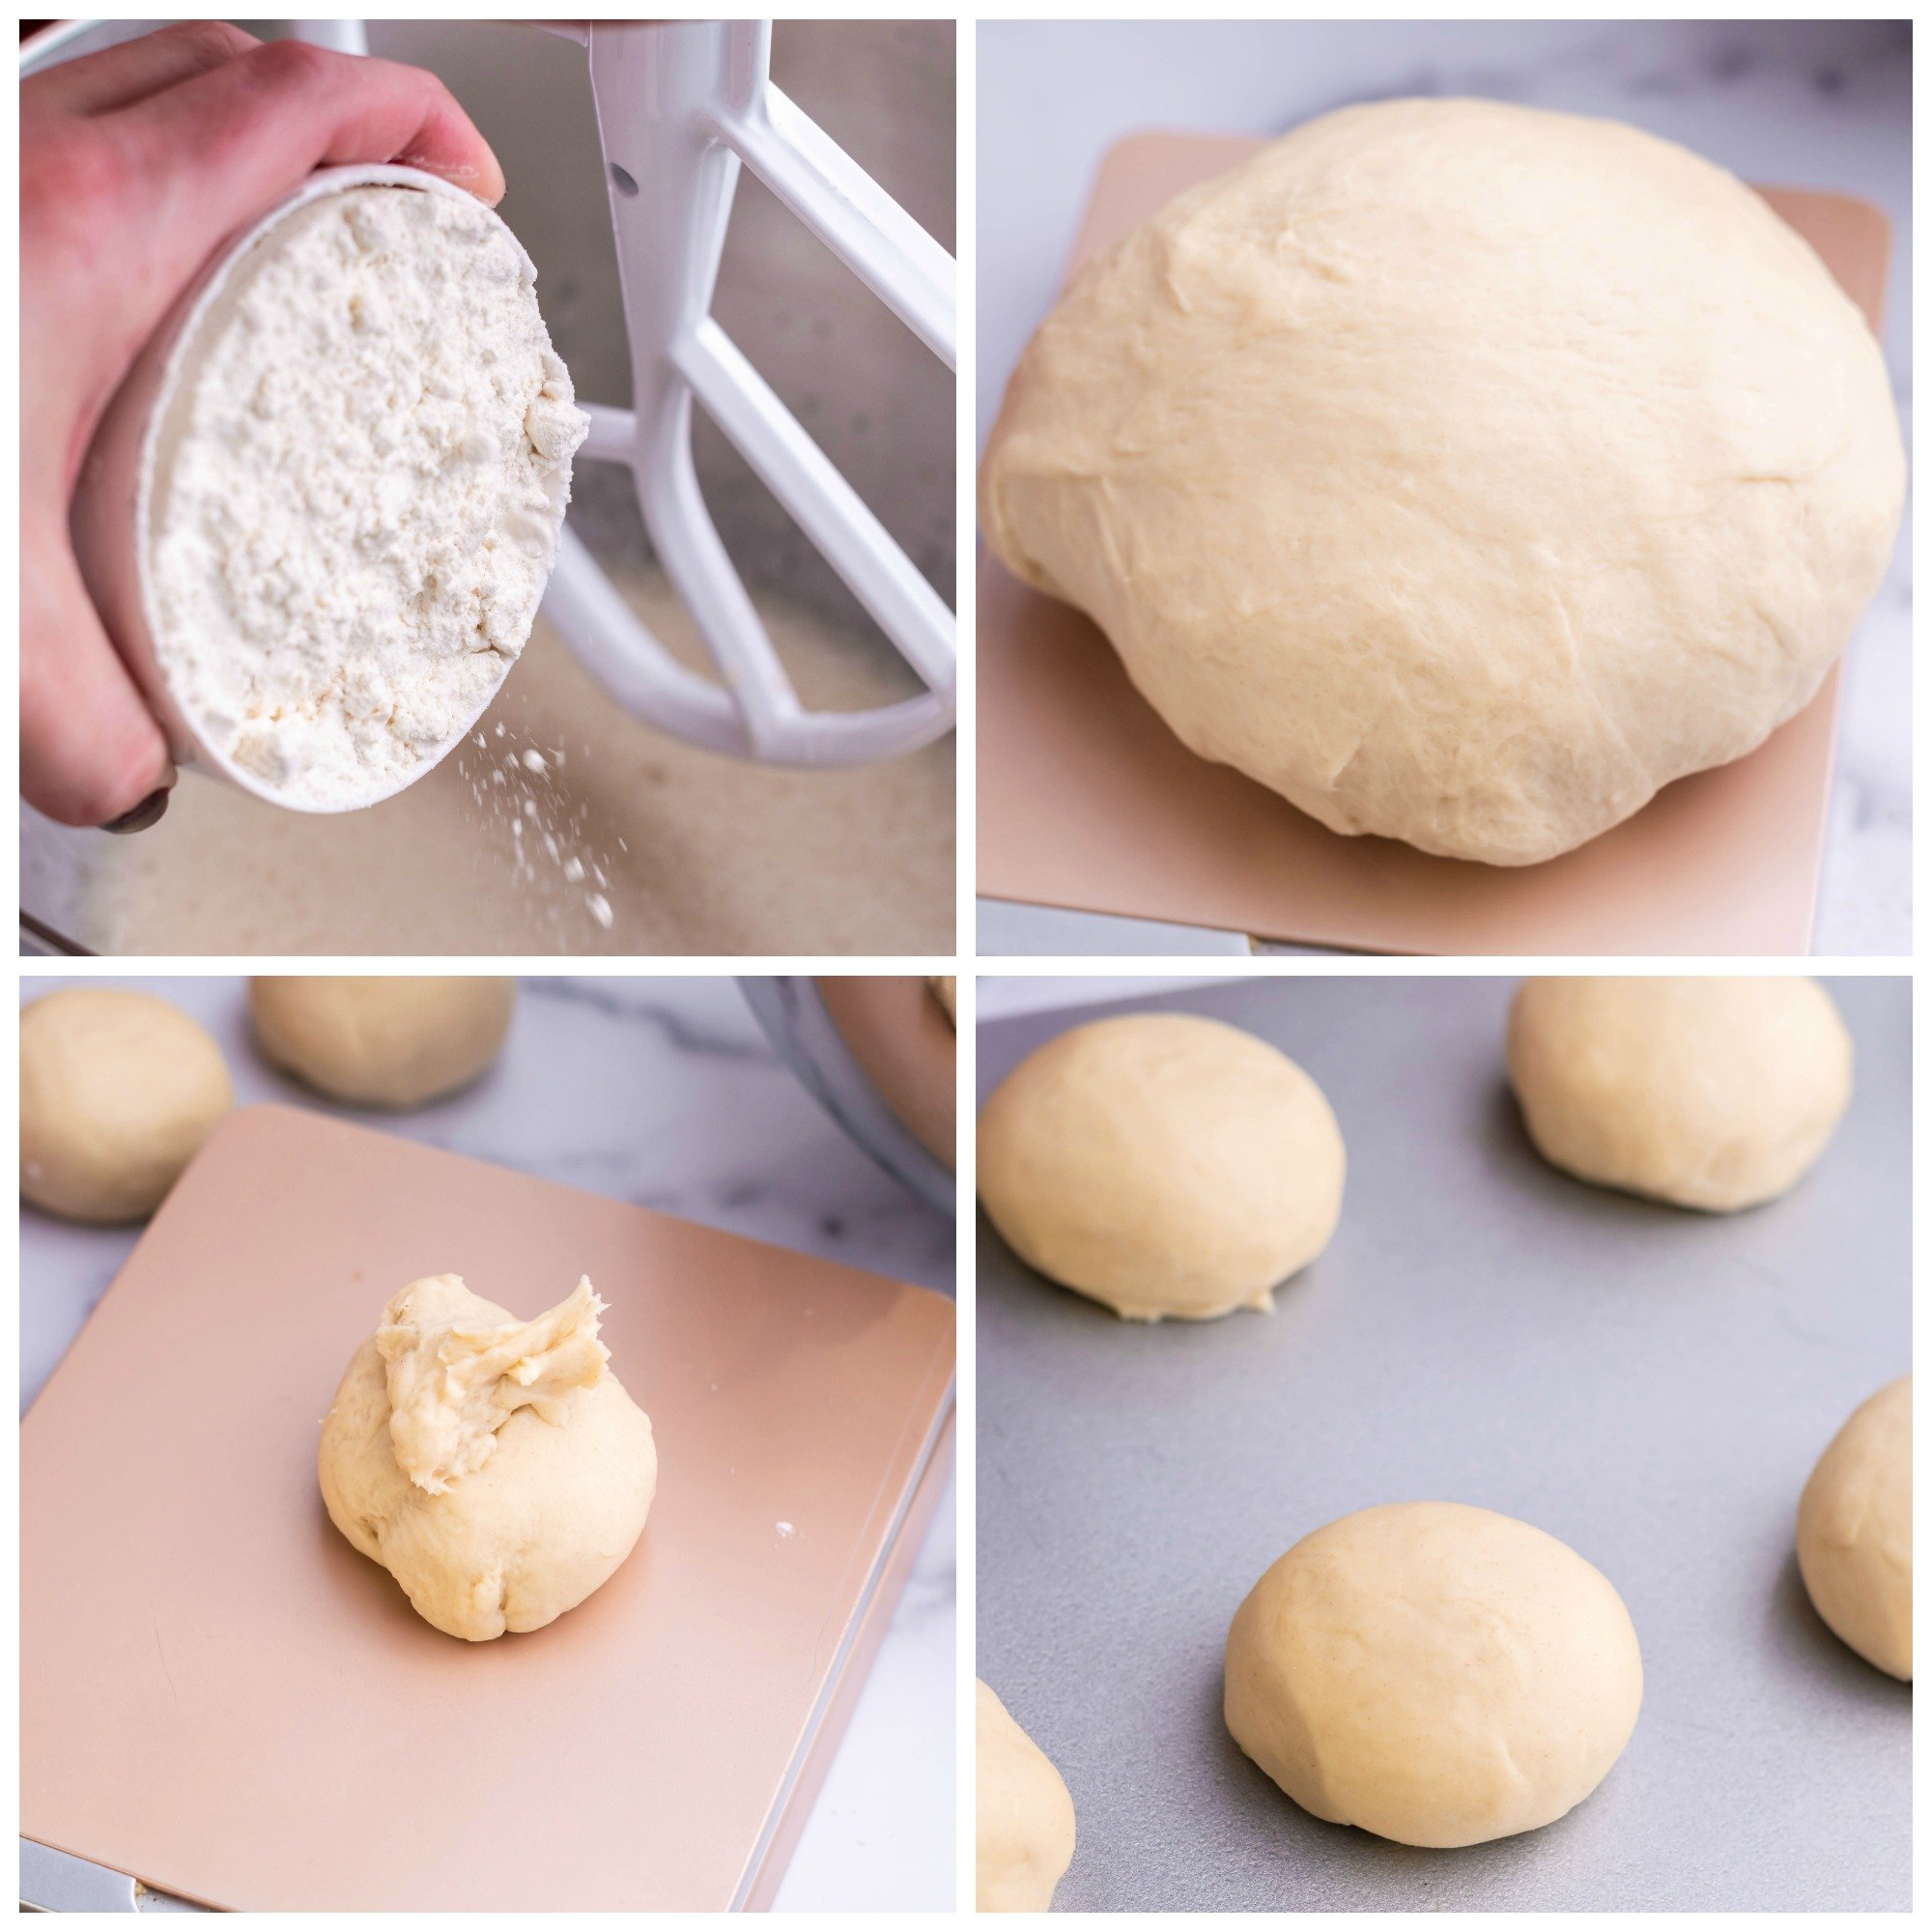 a four image collage of the in process images for forming homemade hamburger bun dough